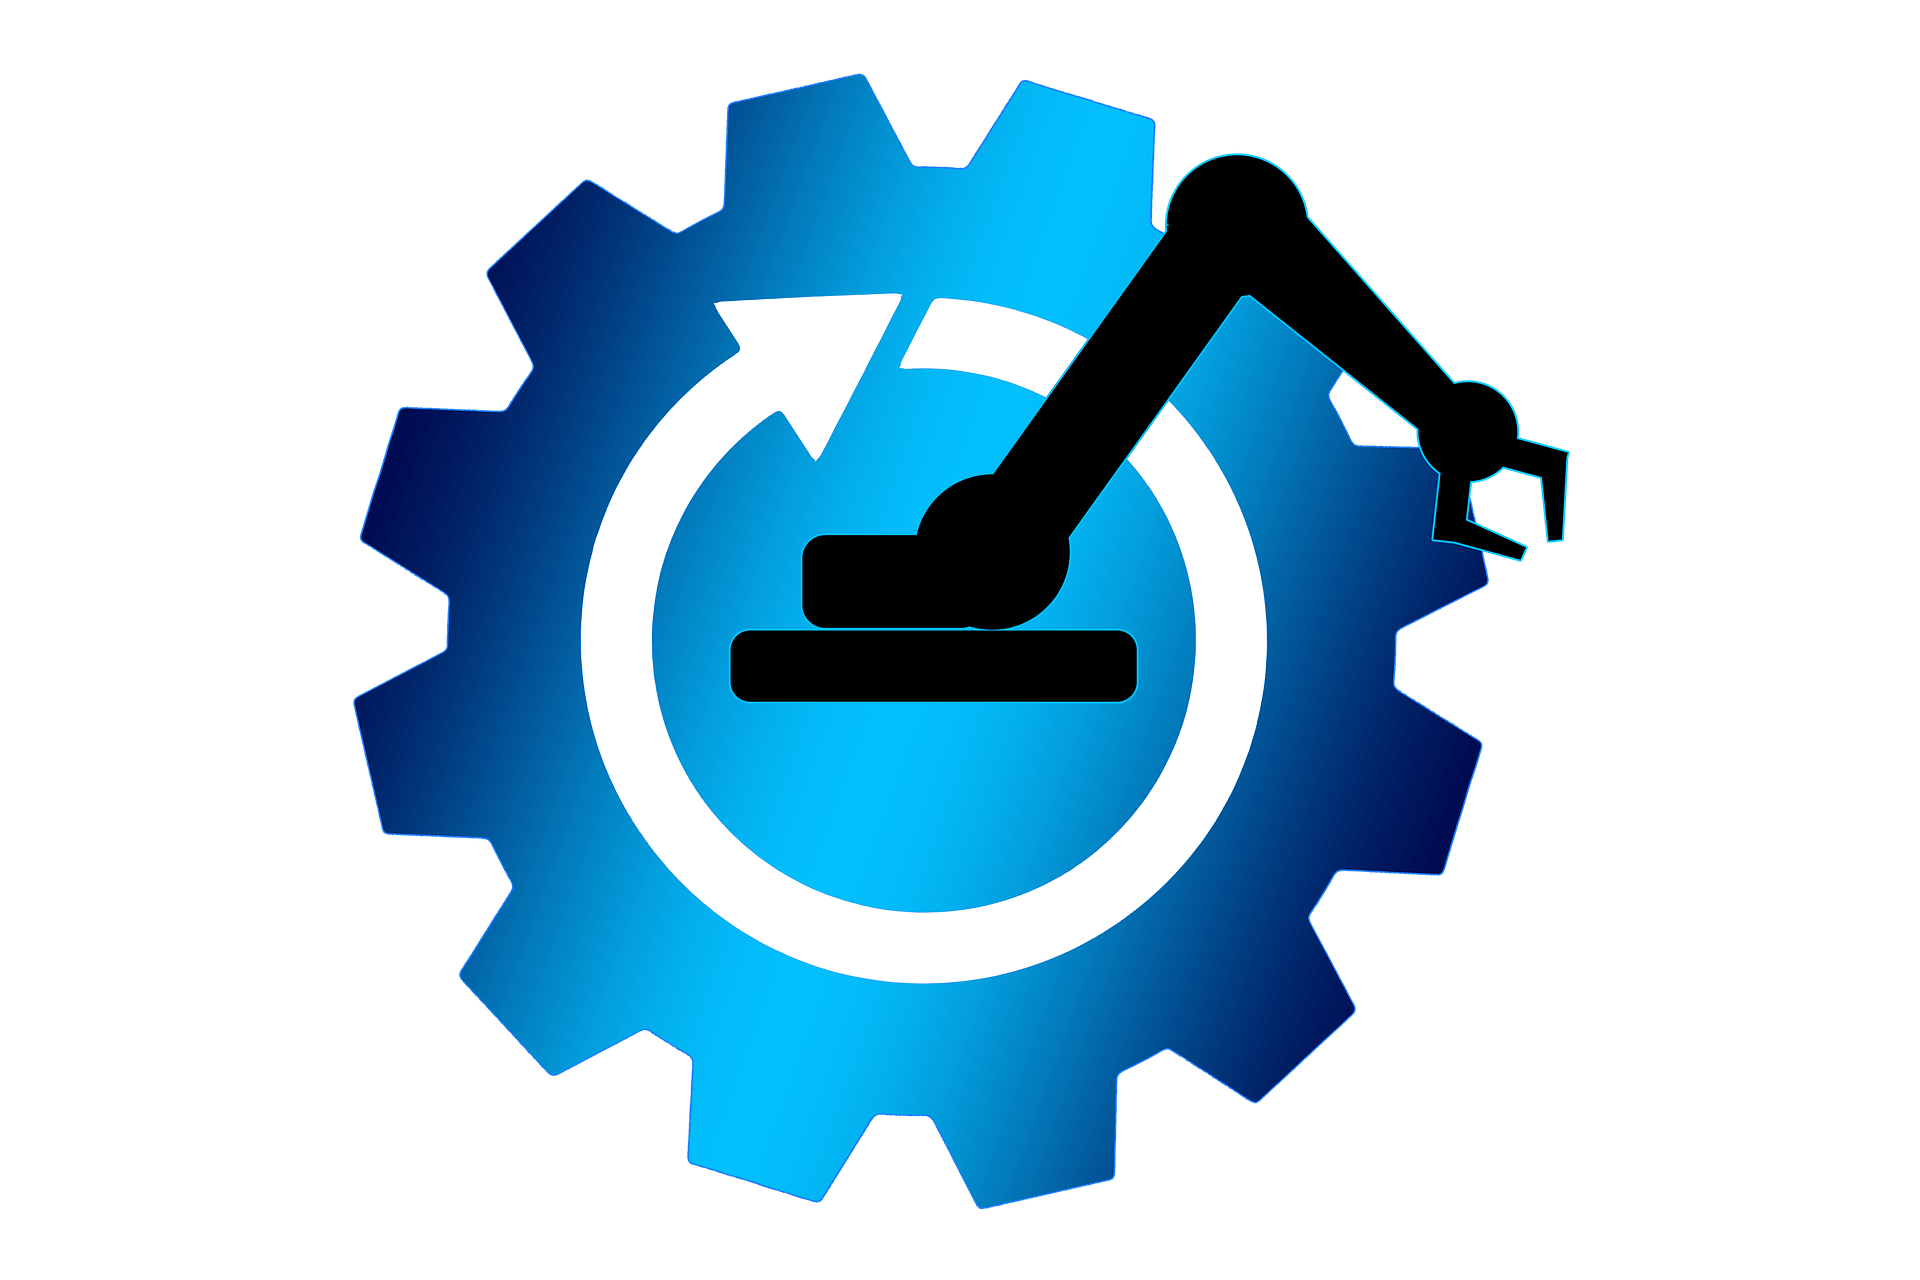 Engineering clipart design engineering. Automation rn serves as